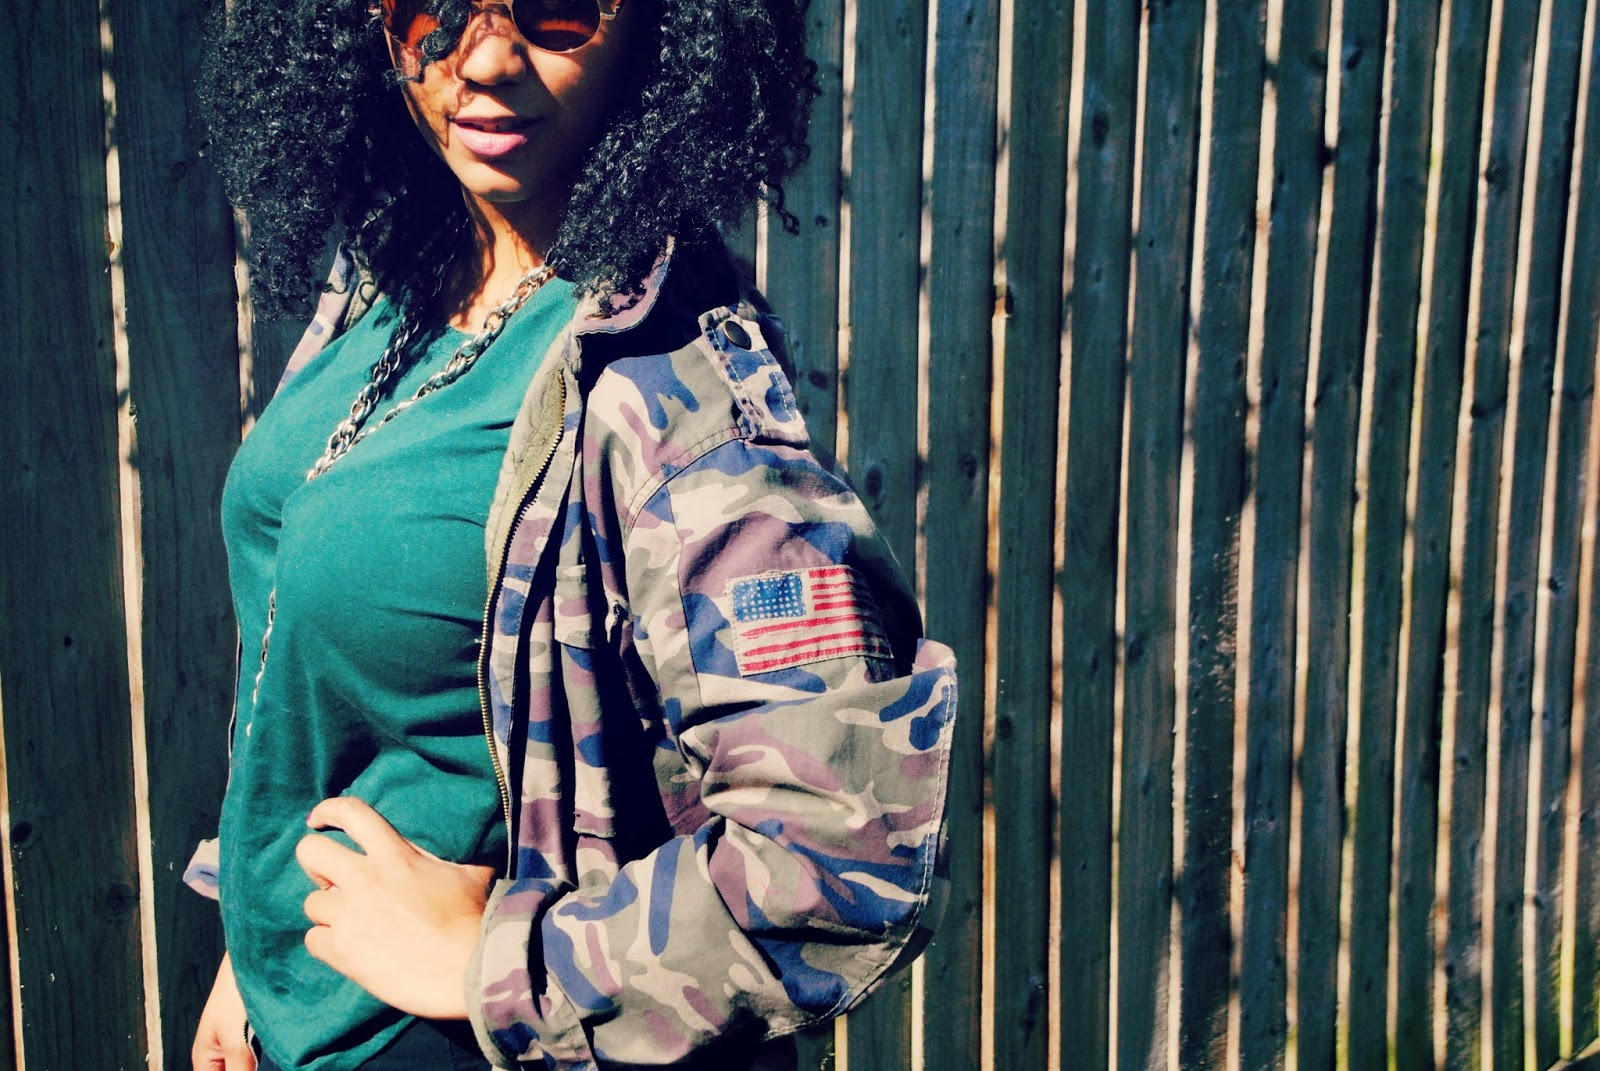 Army style jacket